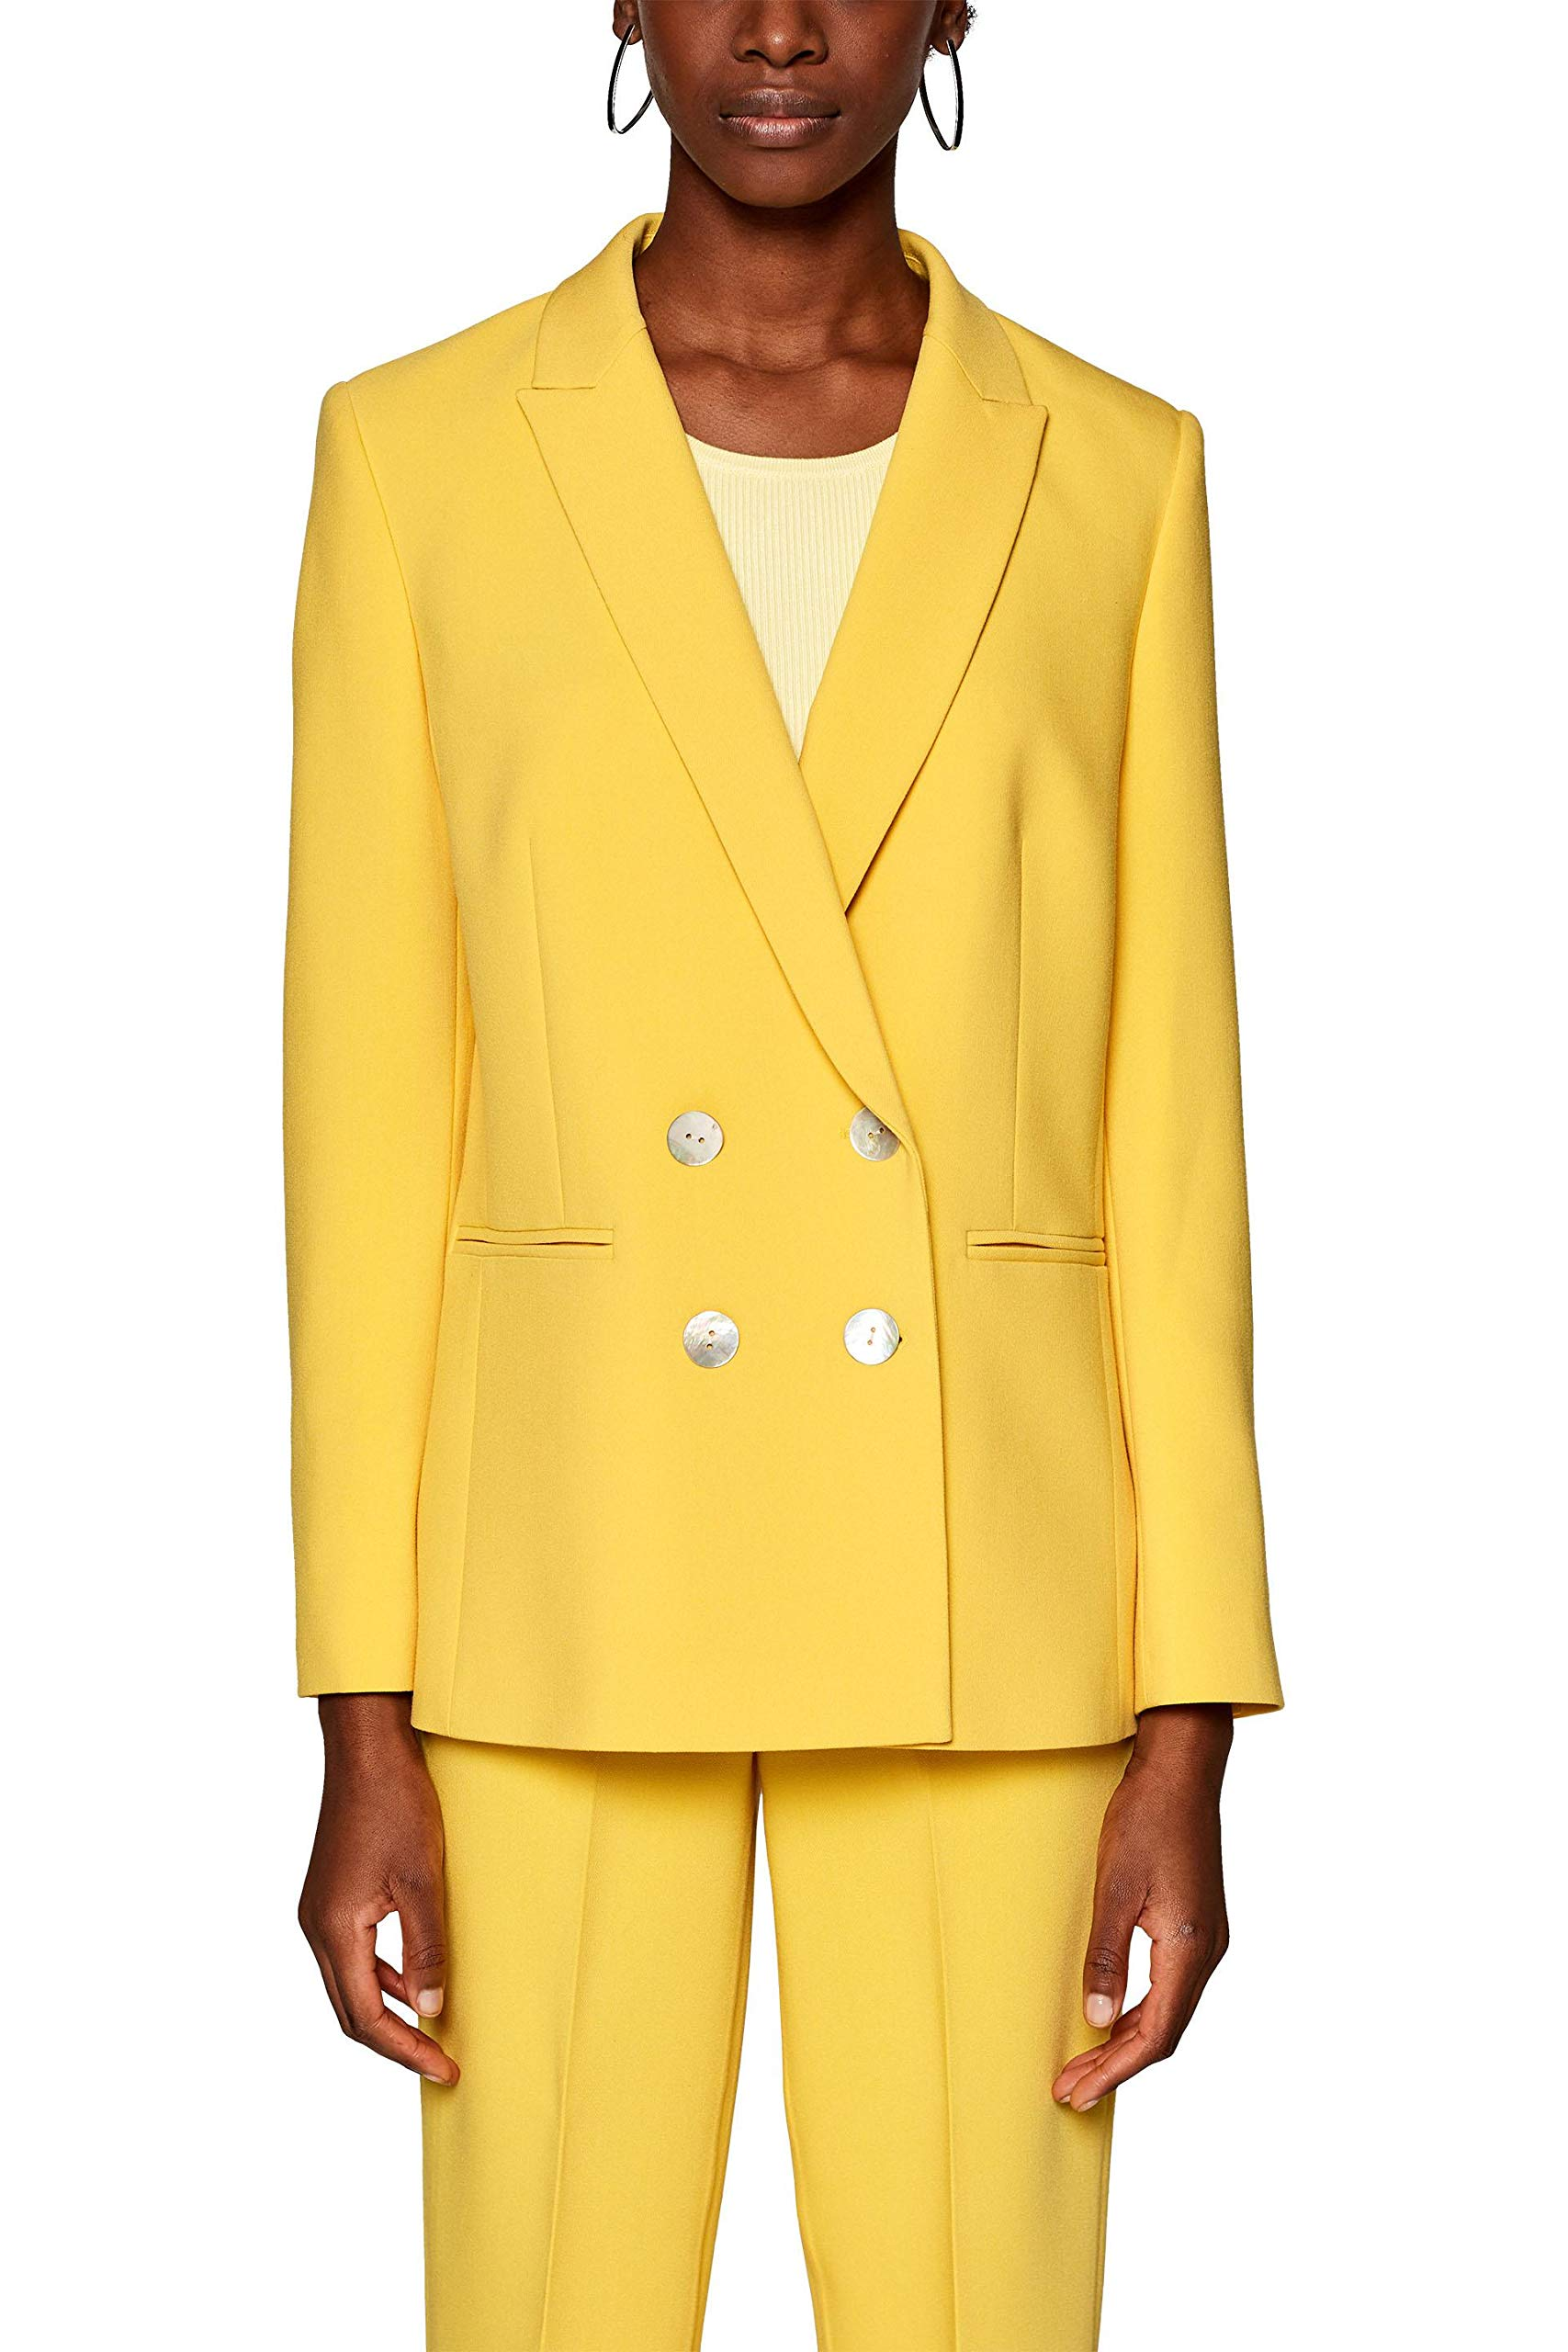 Collection Femme 029eo1g025 Veste Fr CostumeJauneyellow De Esprit 75036 roBWxeQdEC